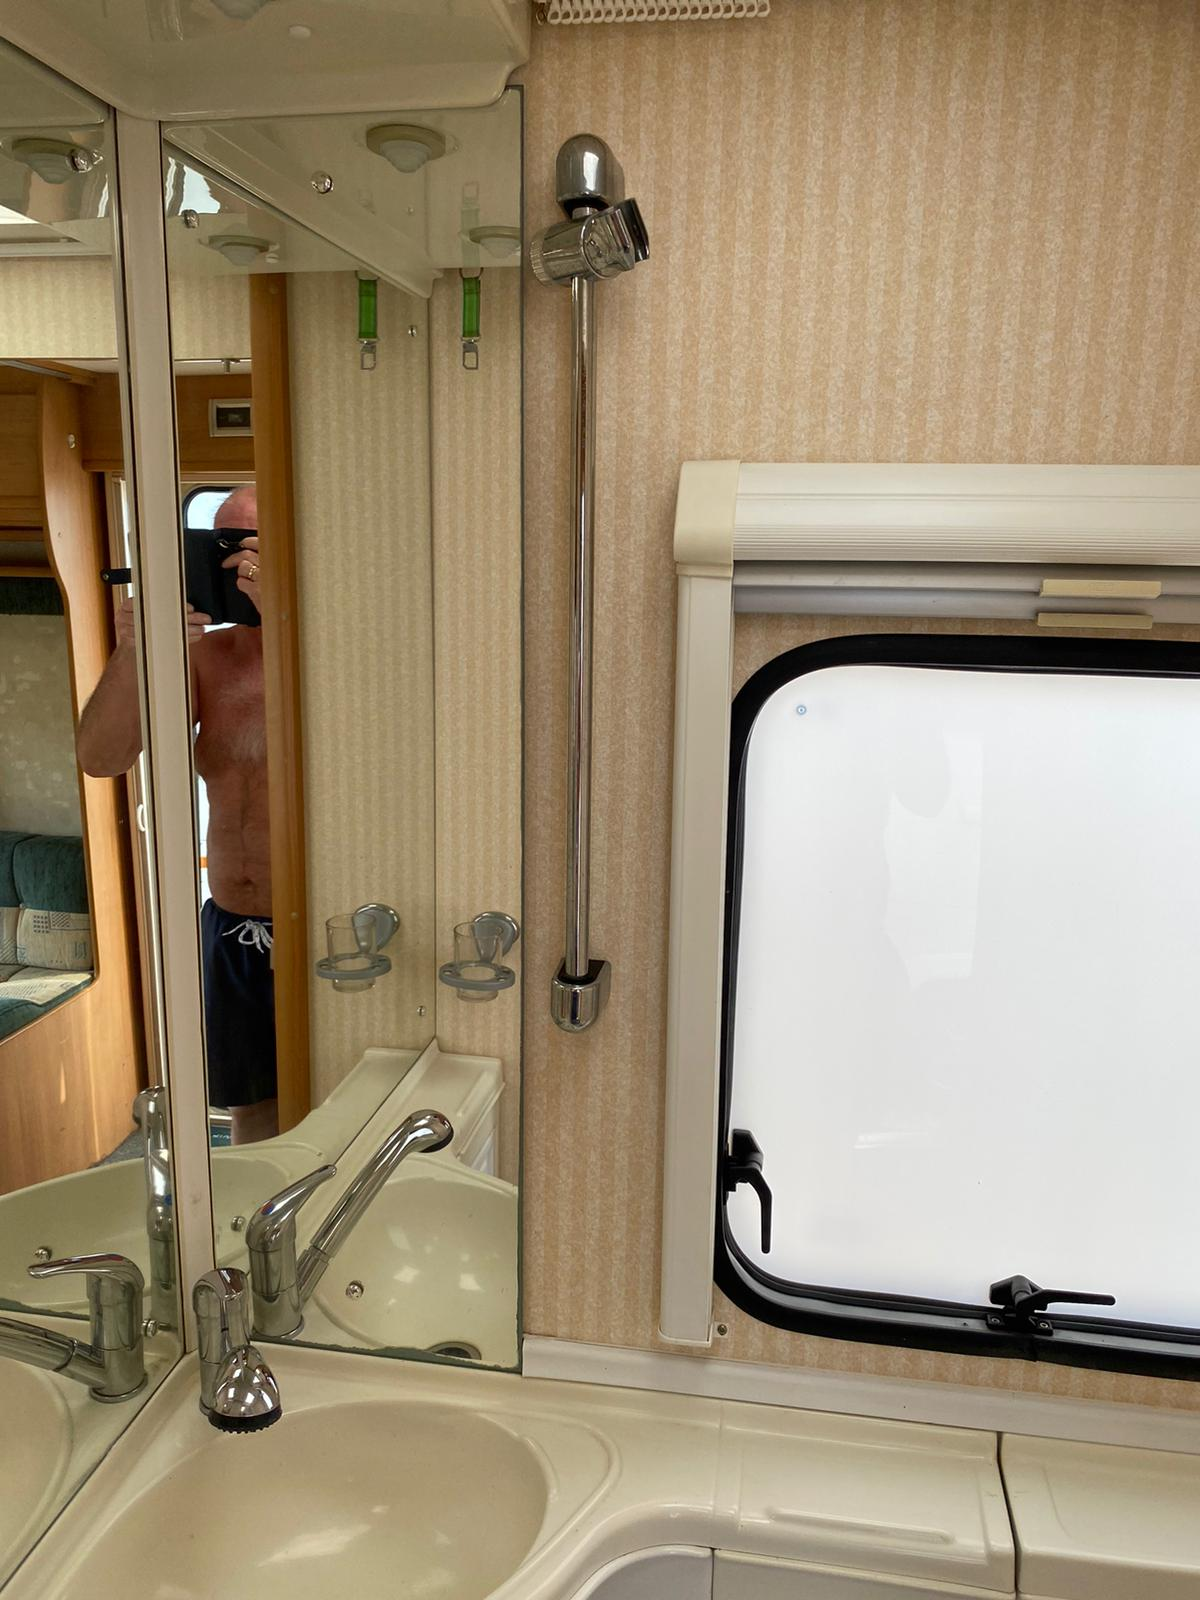 Want to find your ideal caravan?